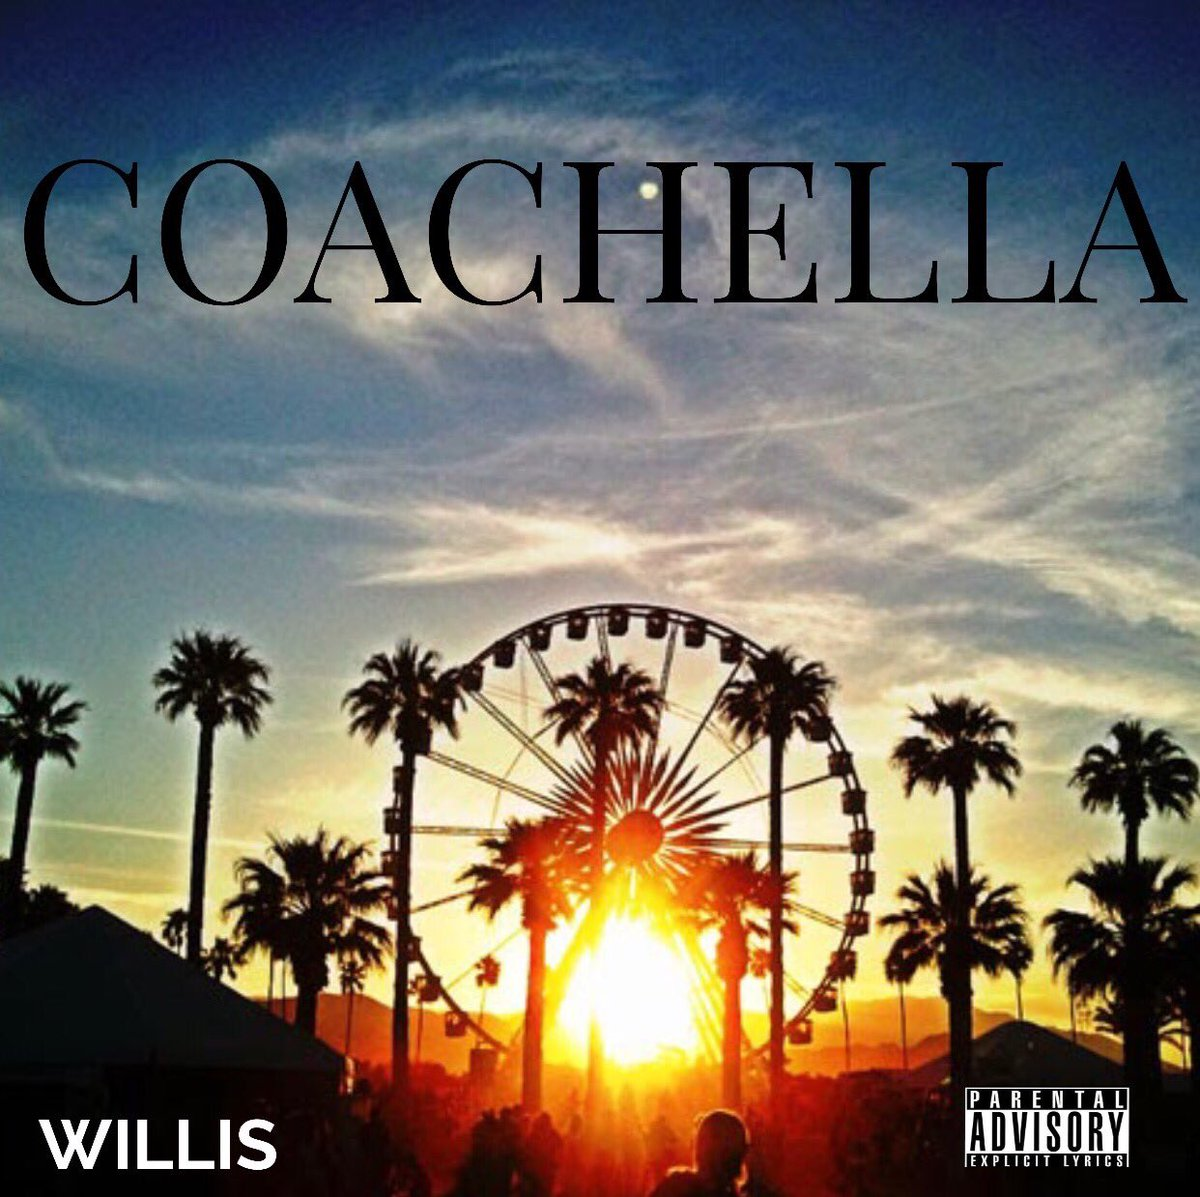 #COACHELLA Dropping on iTunes/Apple Music, Spotify, google play, and more August 1st.  pic.twitter.com/8BcKWpt9Qx